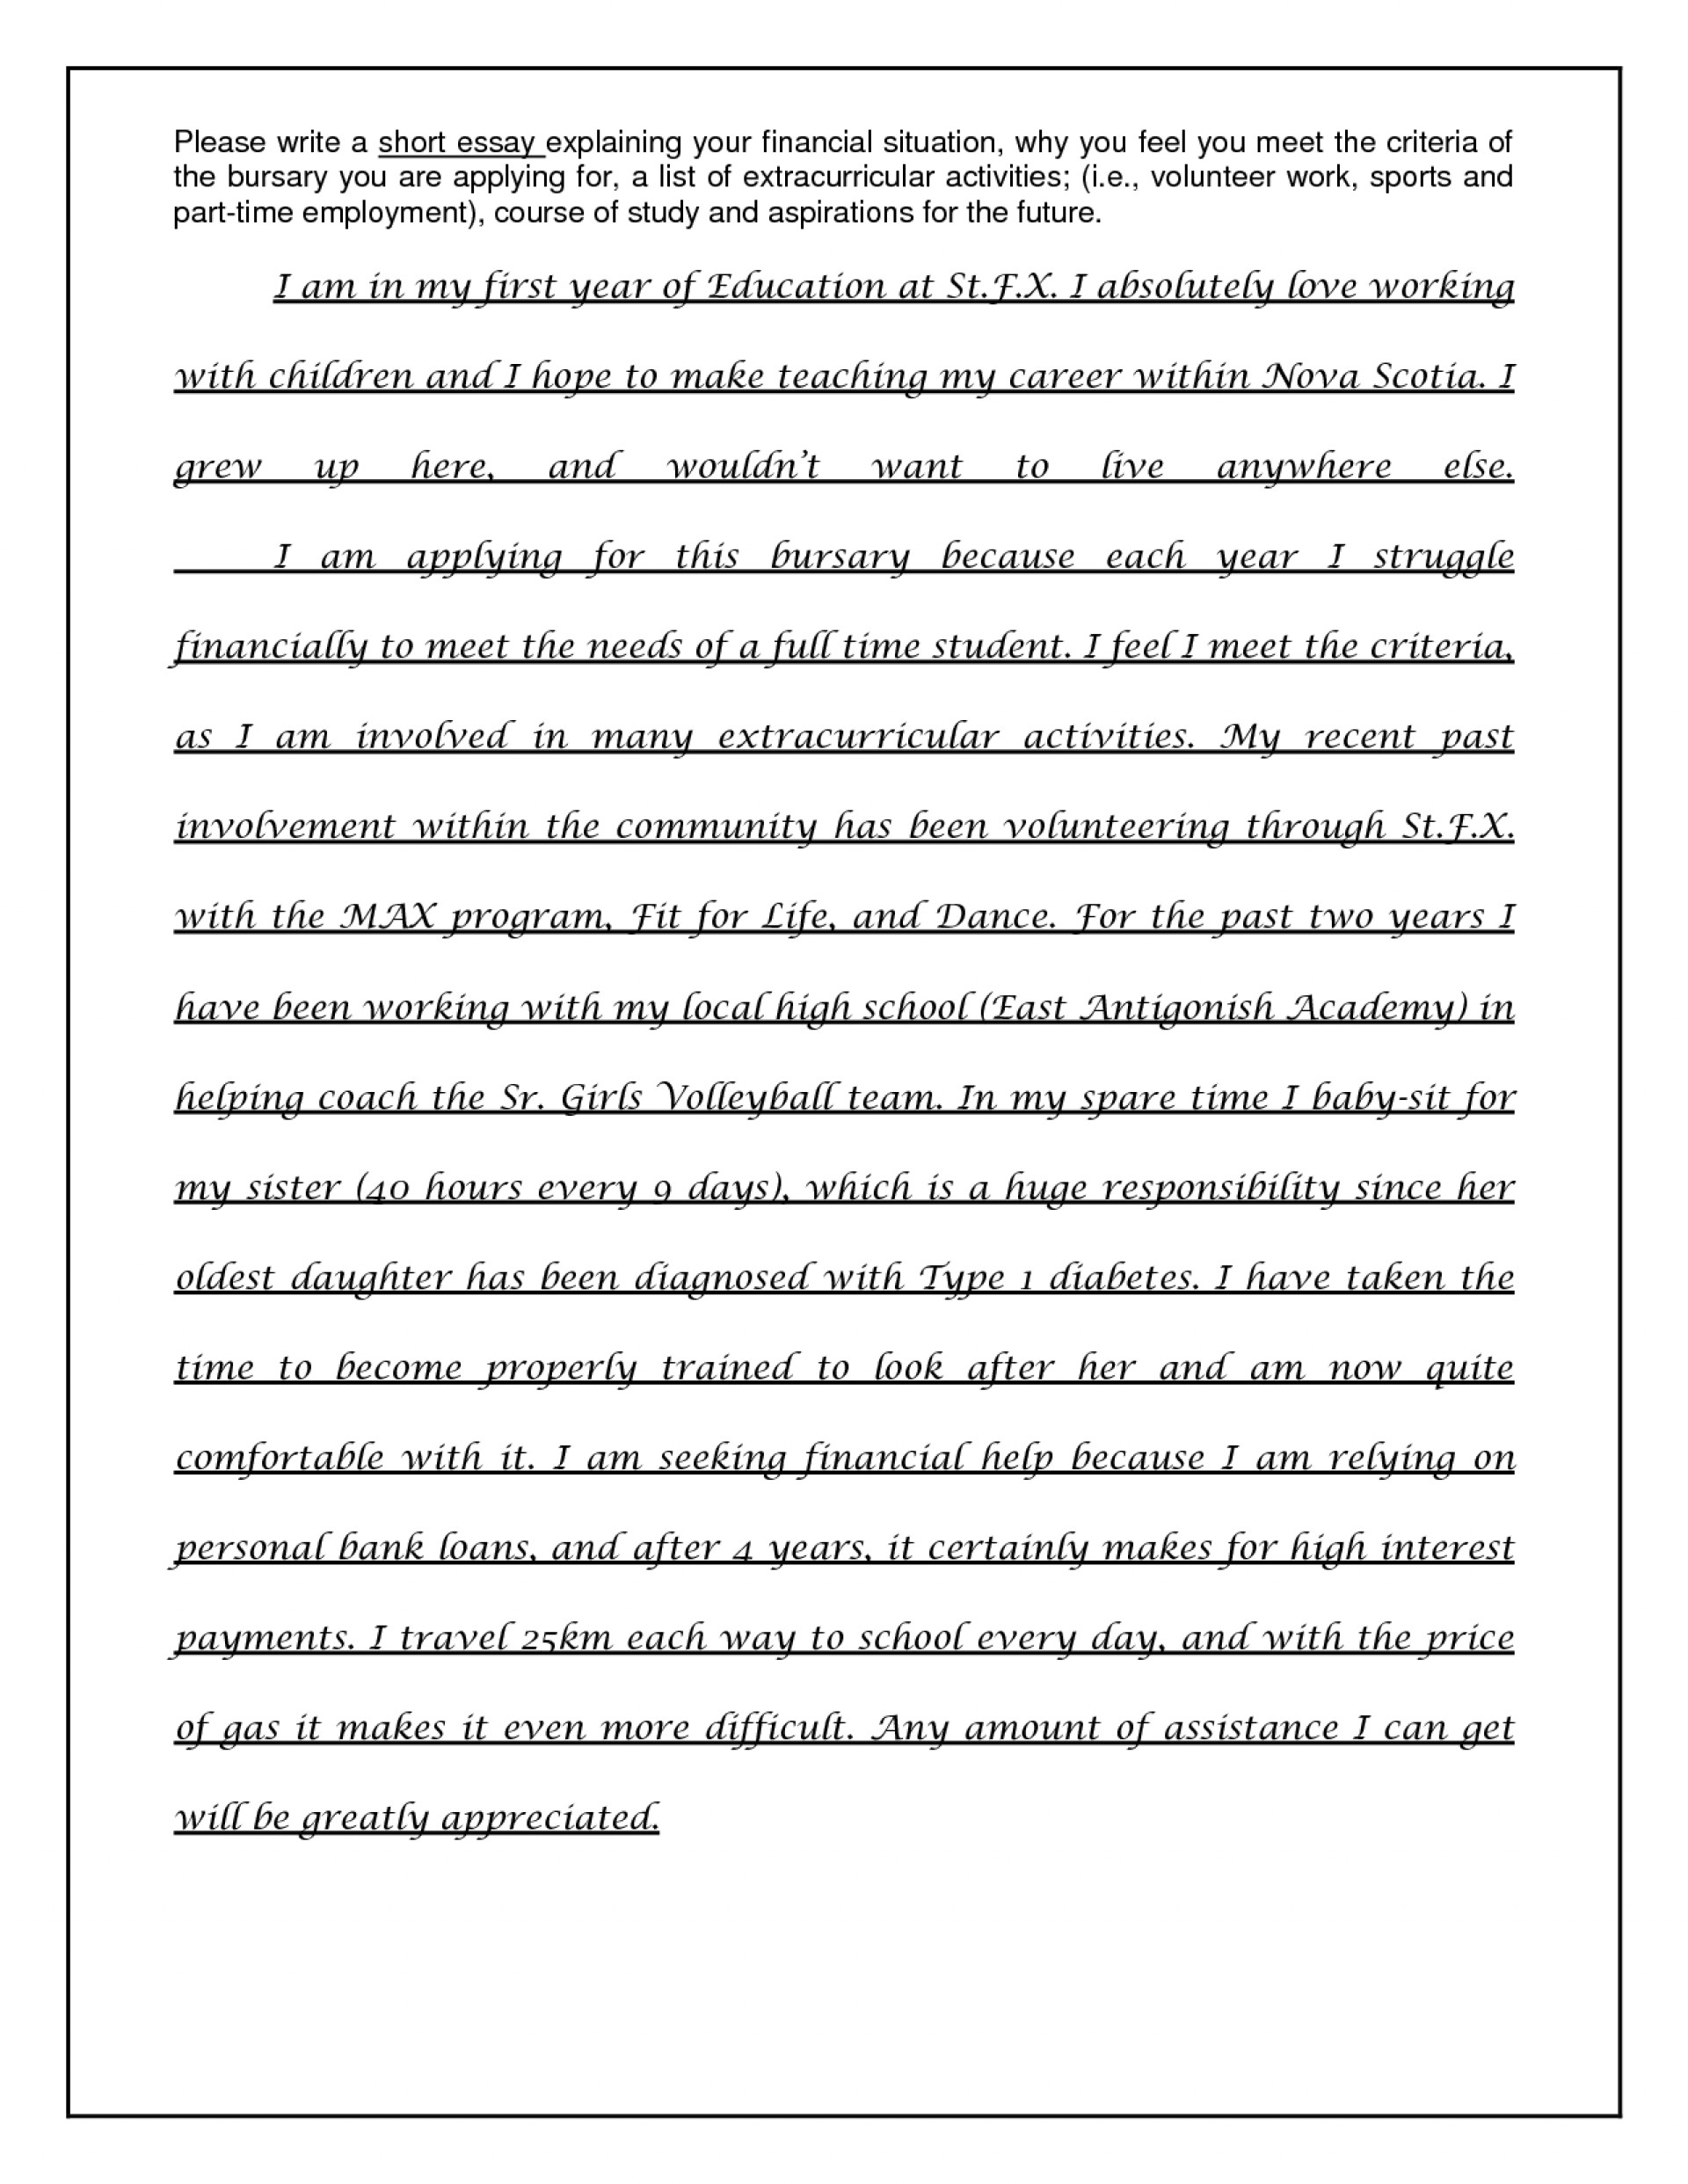 003 Essay Example Why I Need Scholarship Financial Sample Scholarships Examples For Students How Write Essa College Impressive A Should Receive Want To Be Teacher 1920